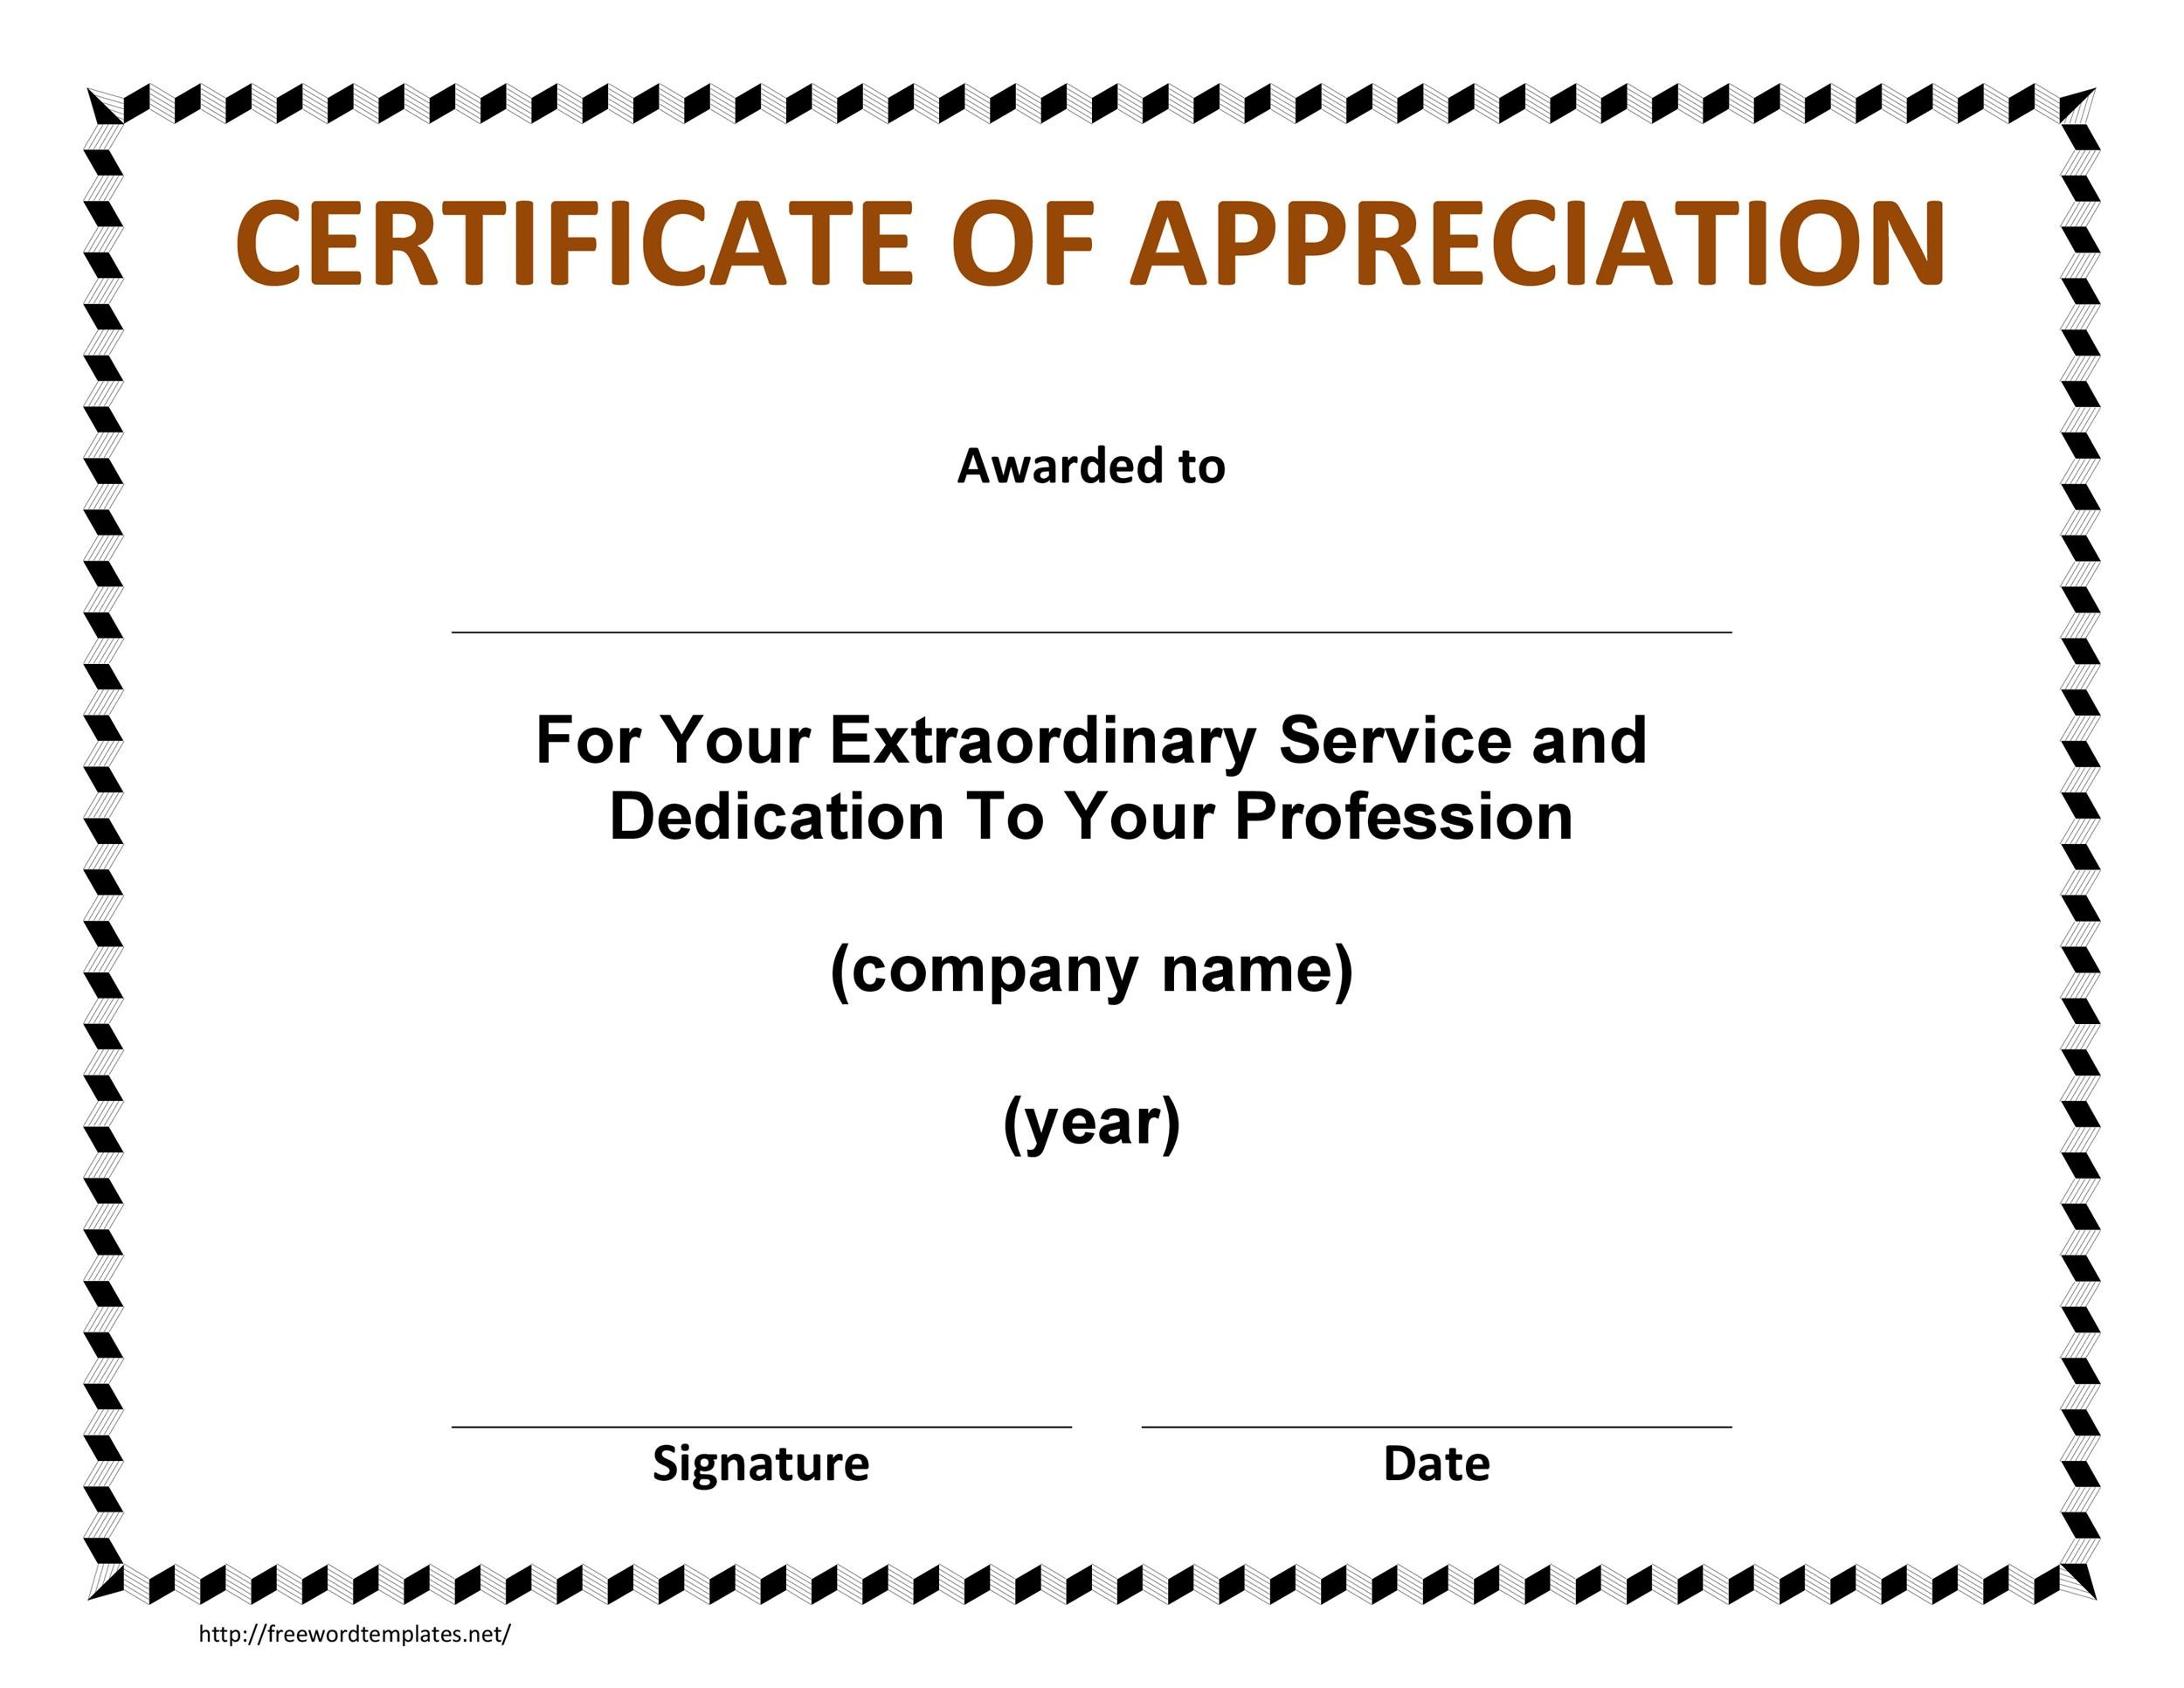 Sample certificate of appreciation gidiyedformapolitica sample certificate of appreciation yadclub Images